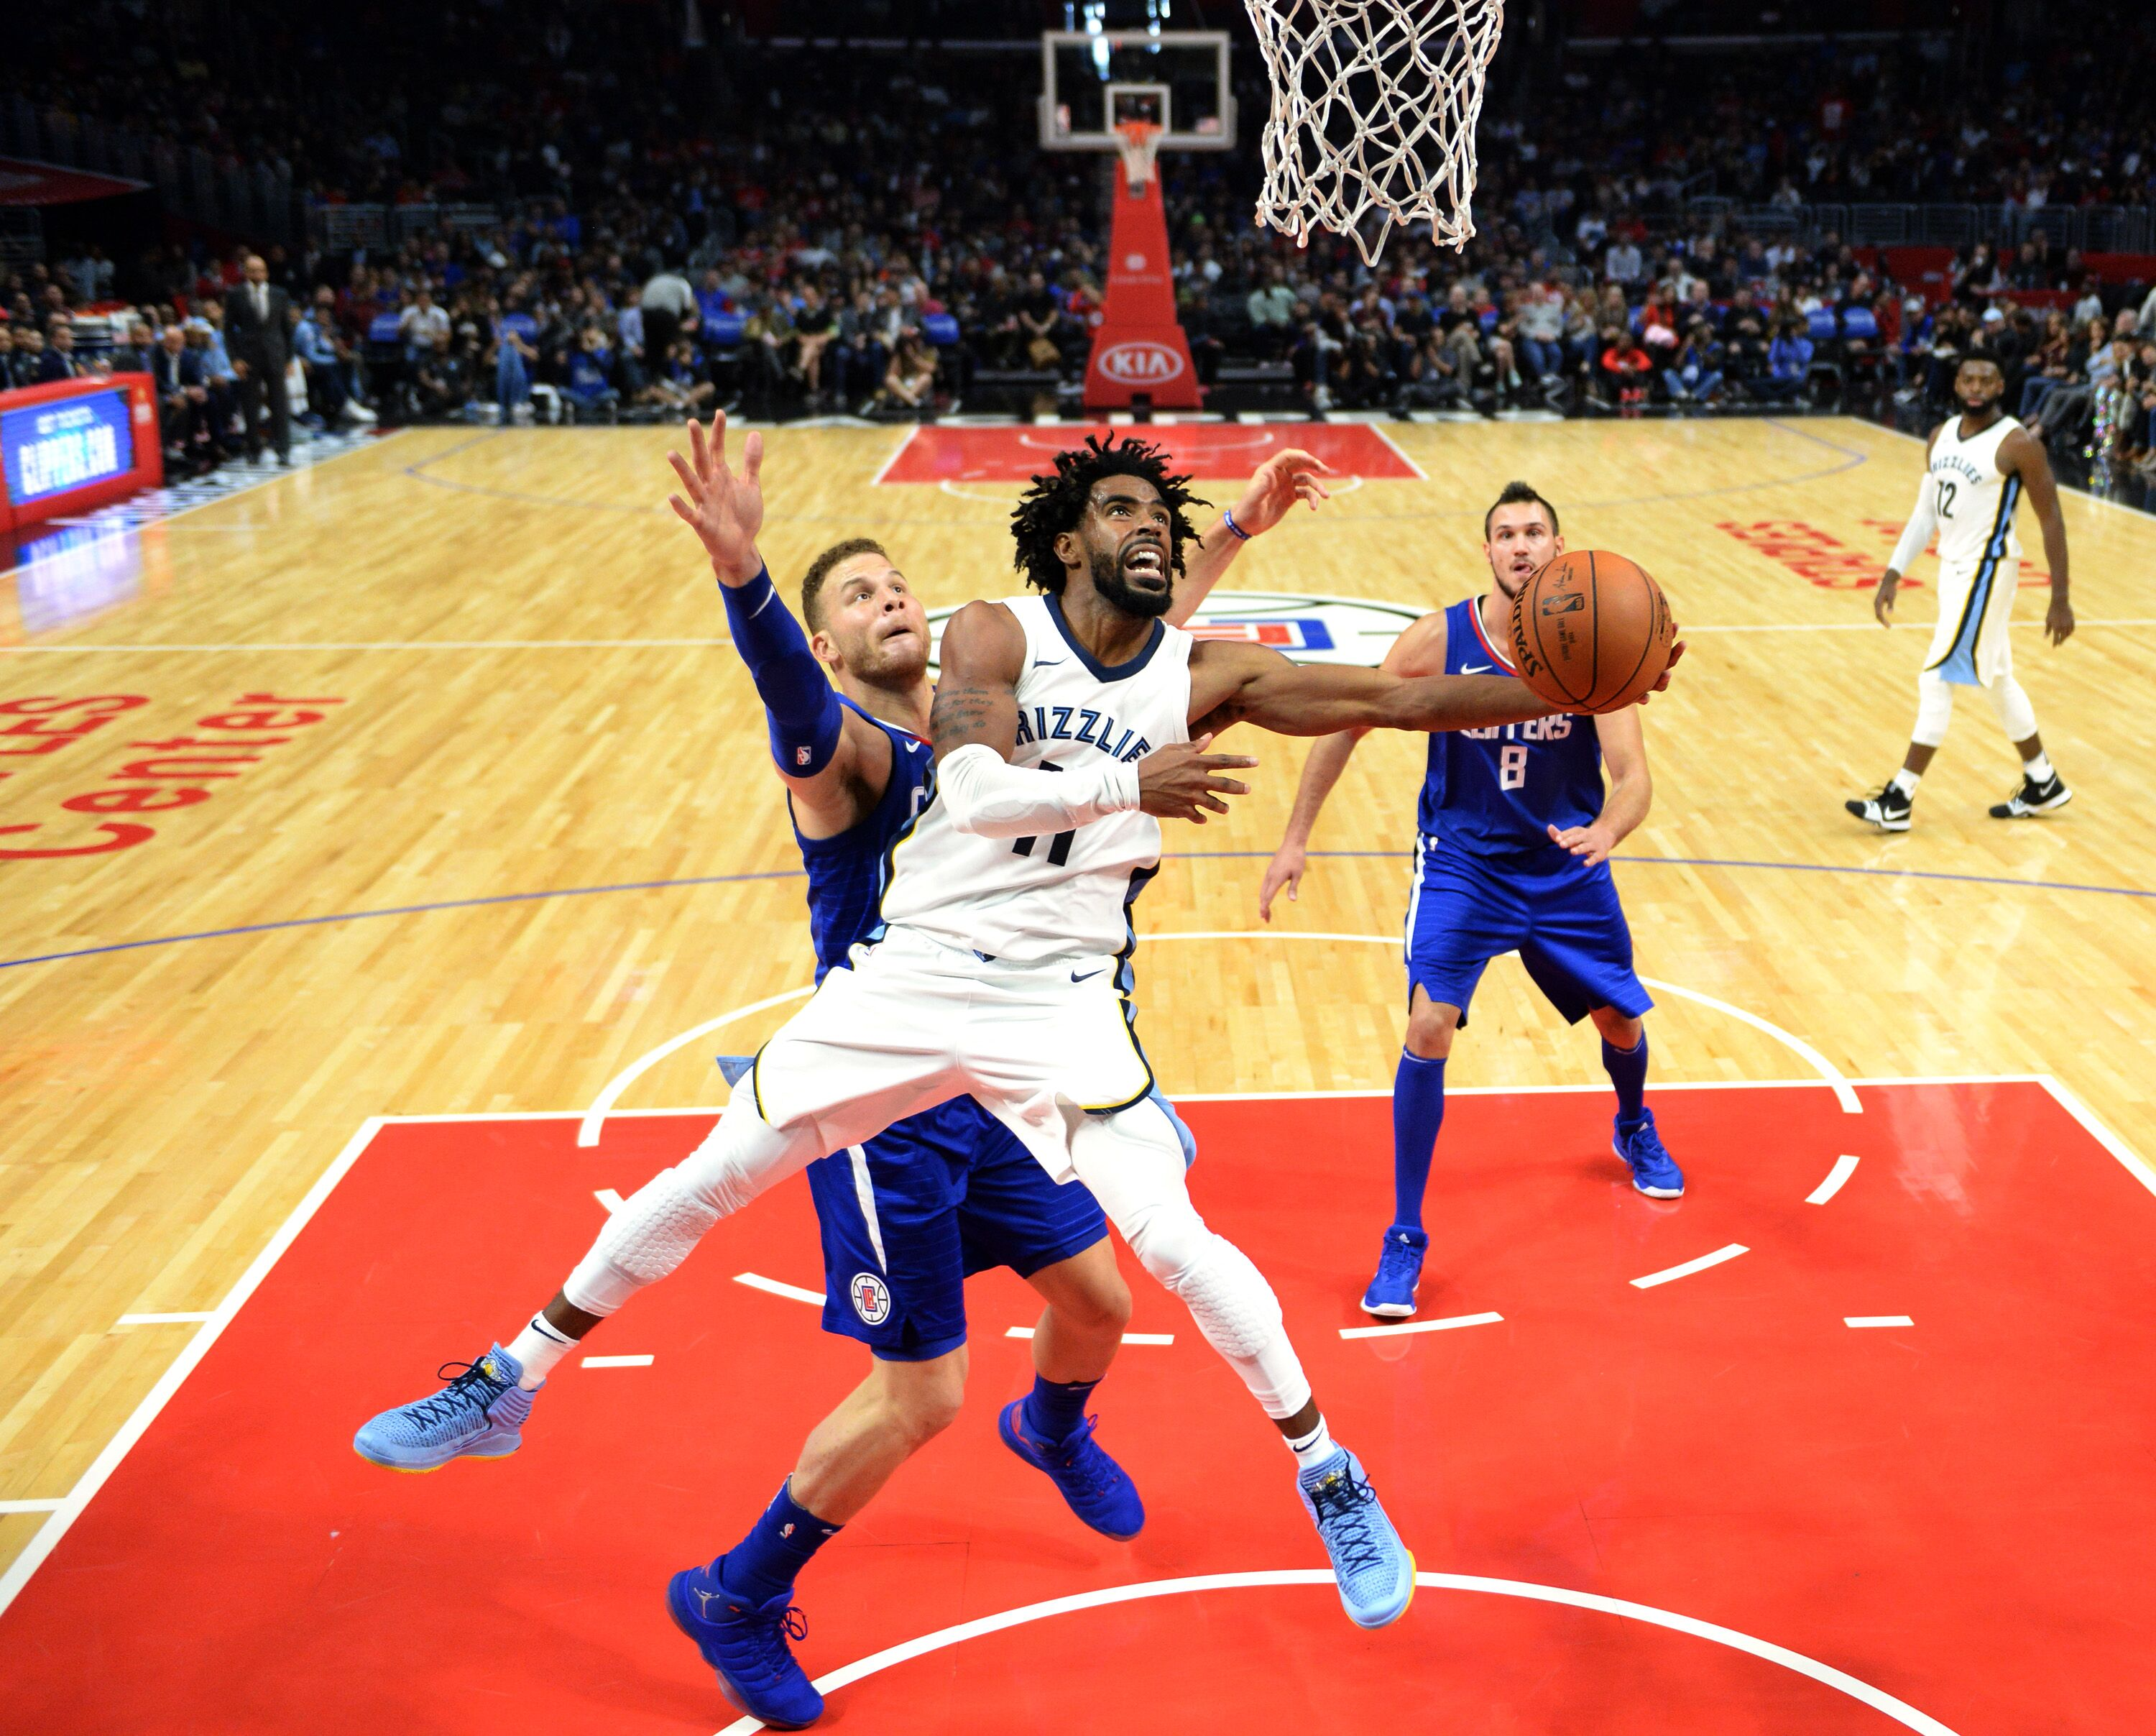 870389884-memphis-grizzlies-v-los-angeles-clippers.jpg